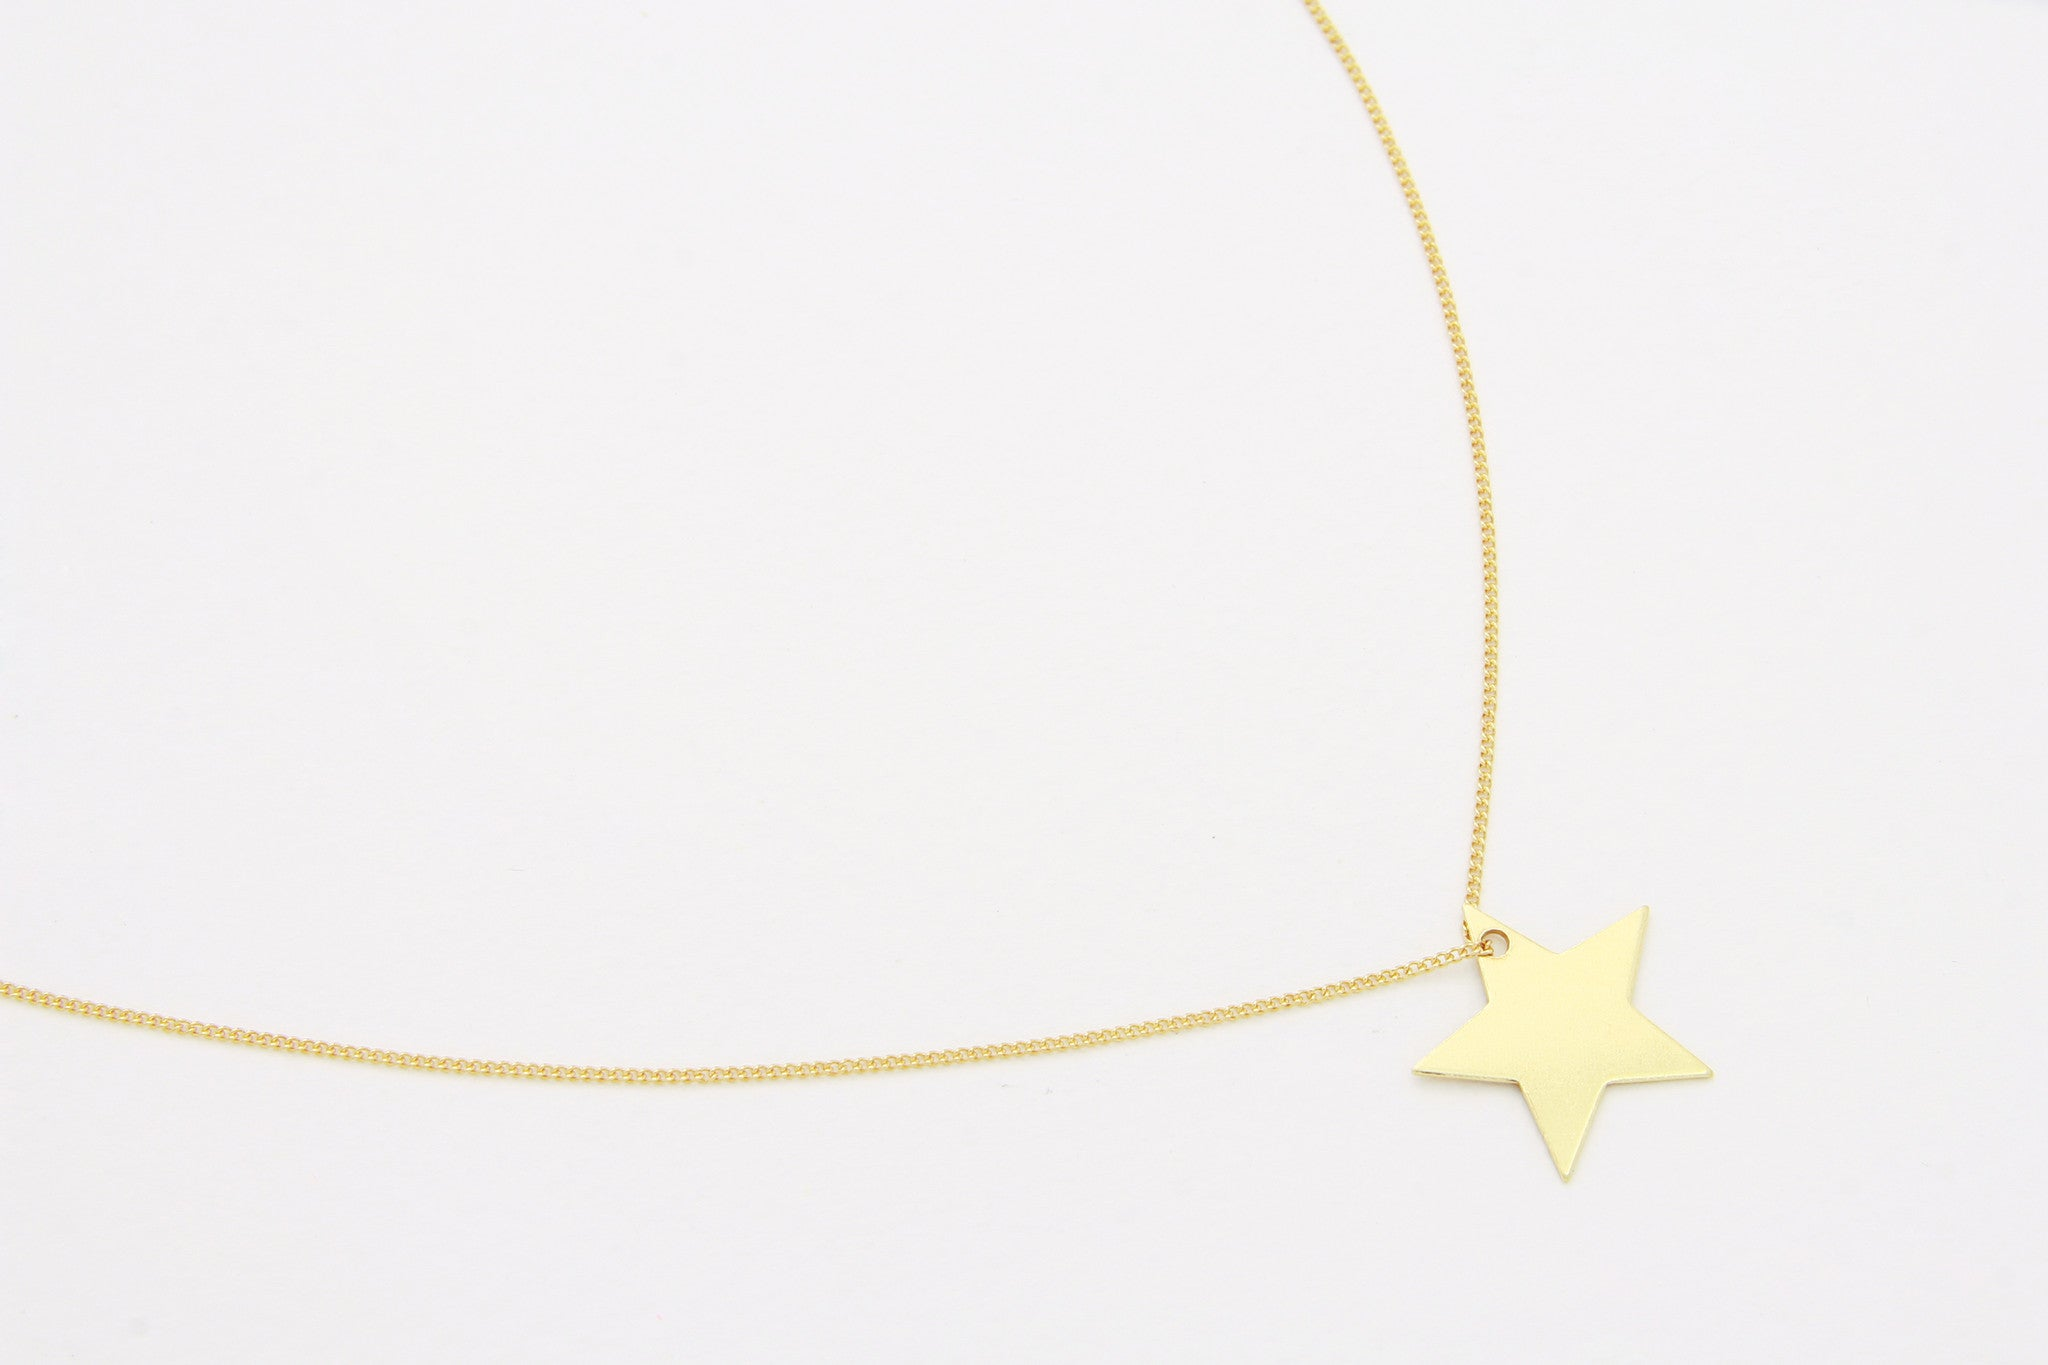 Kette PLAIN STAR MEDIUM 925 Silber vergoldet